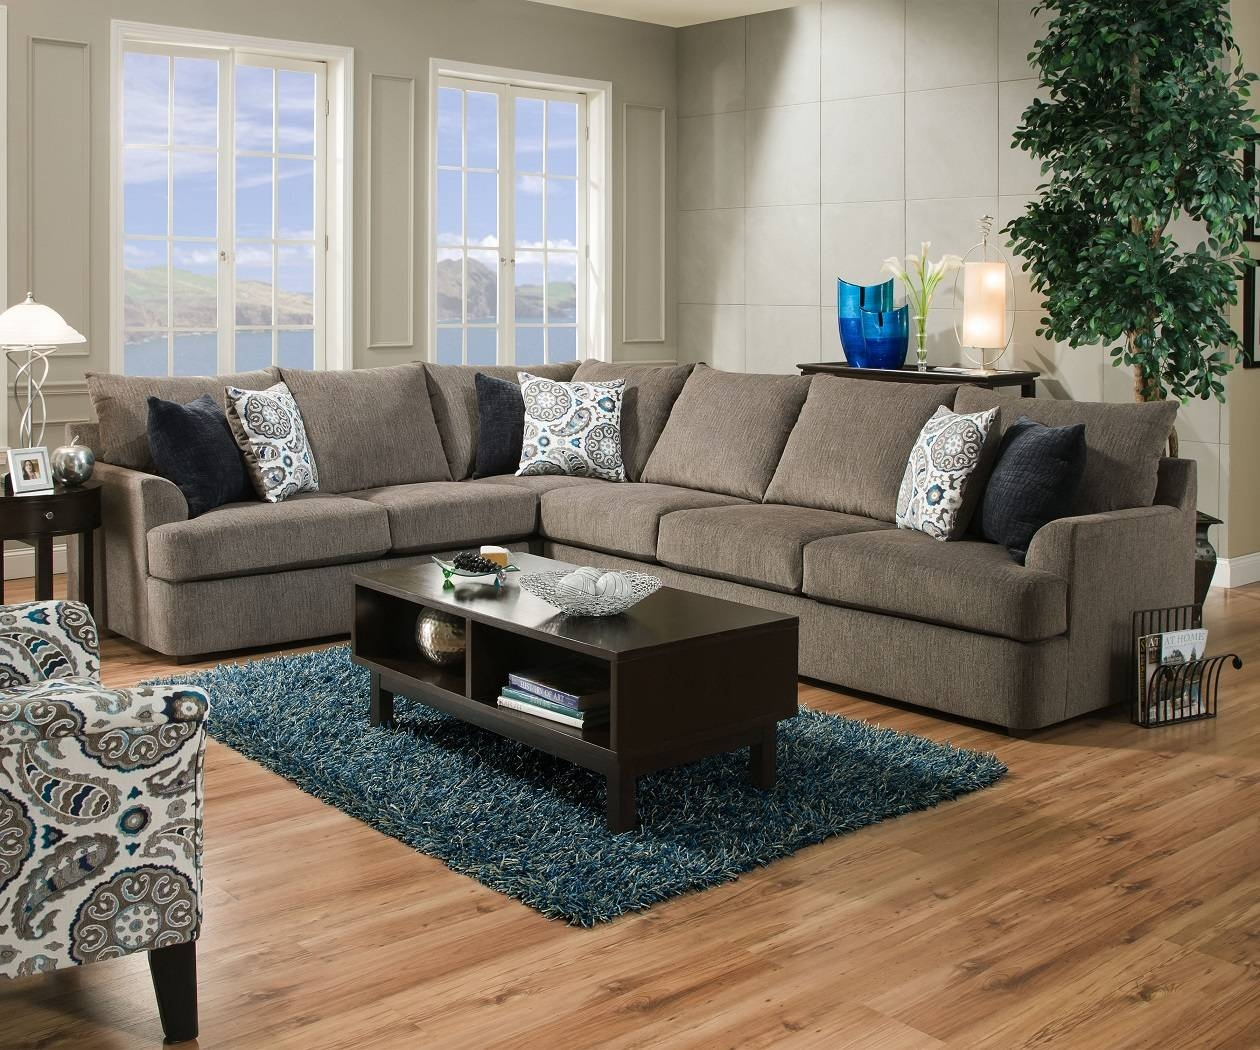 United Simmons Grandstand 8540 Beautyrest Grey Sectional Sofa in Simmons Sectional Sofas (Image 30 of 30)